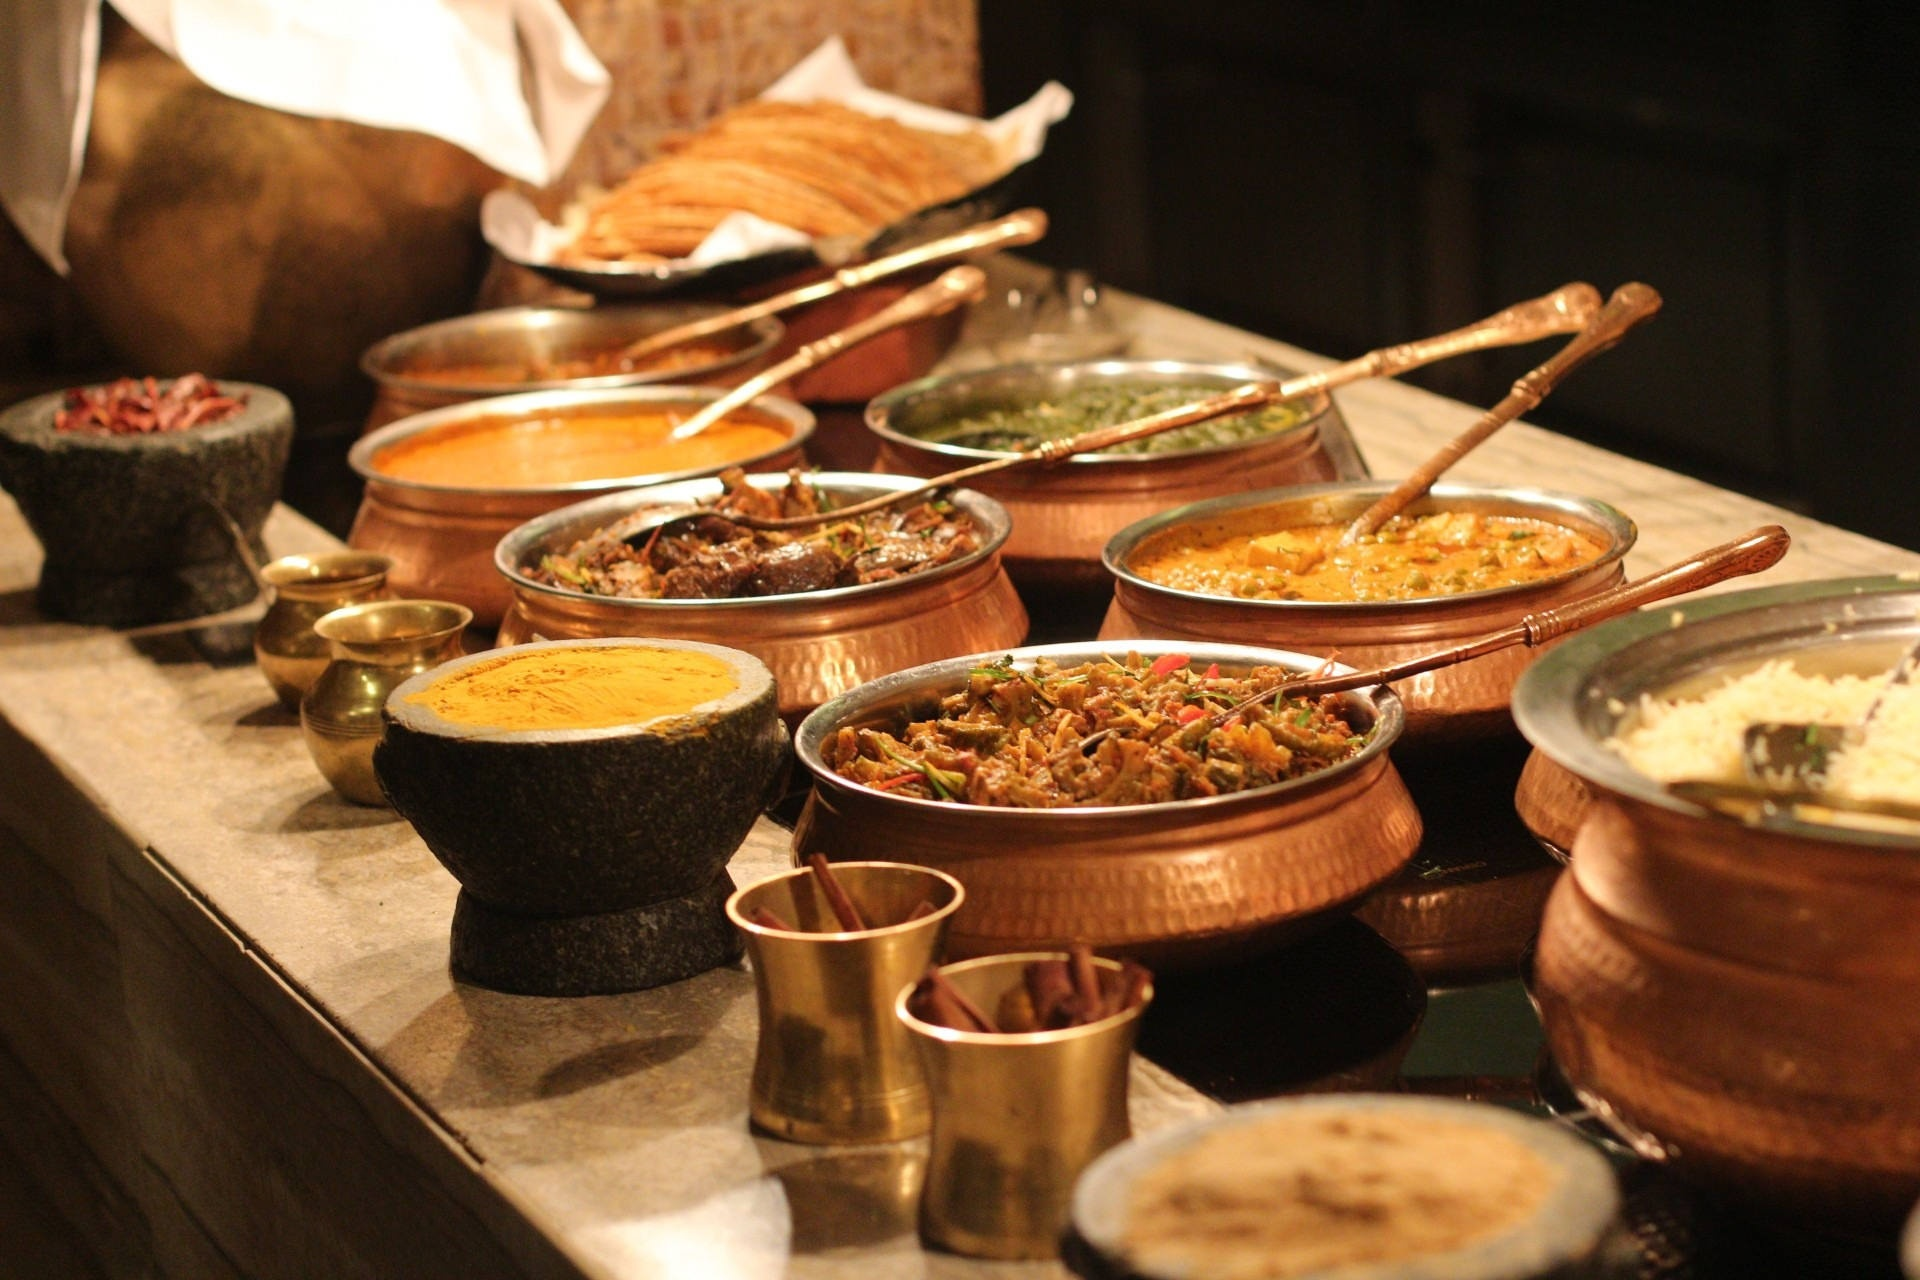 Indian food served daal, rice, vegetable and spices shown